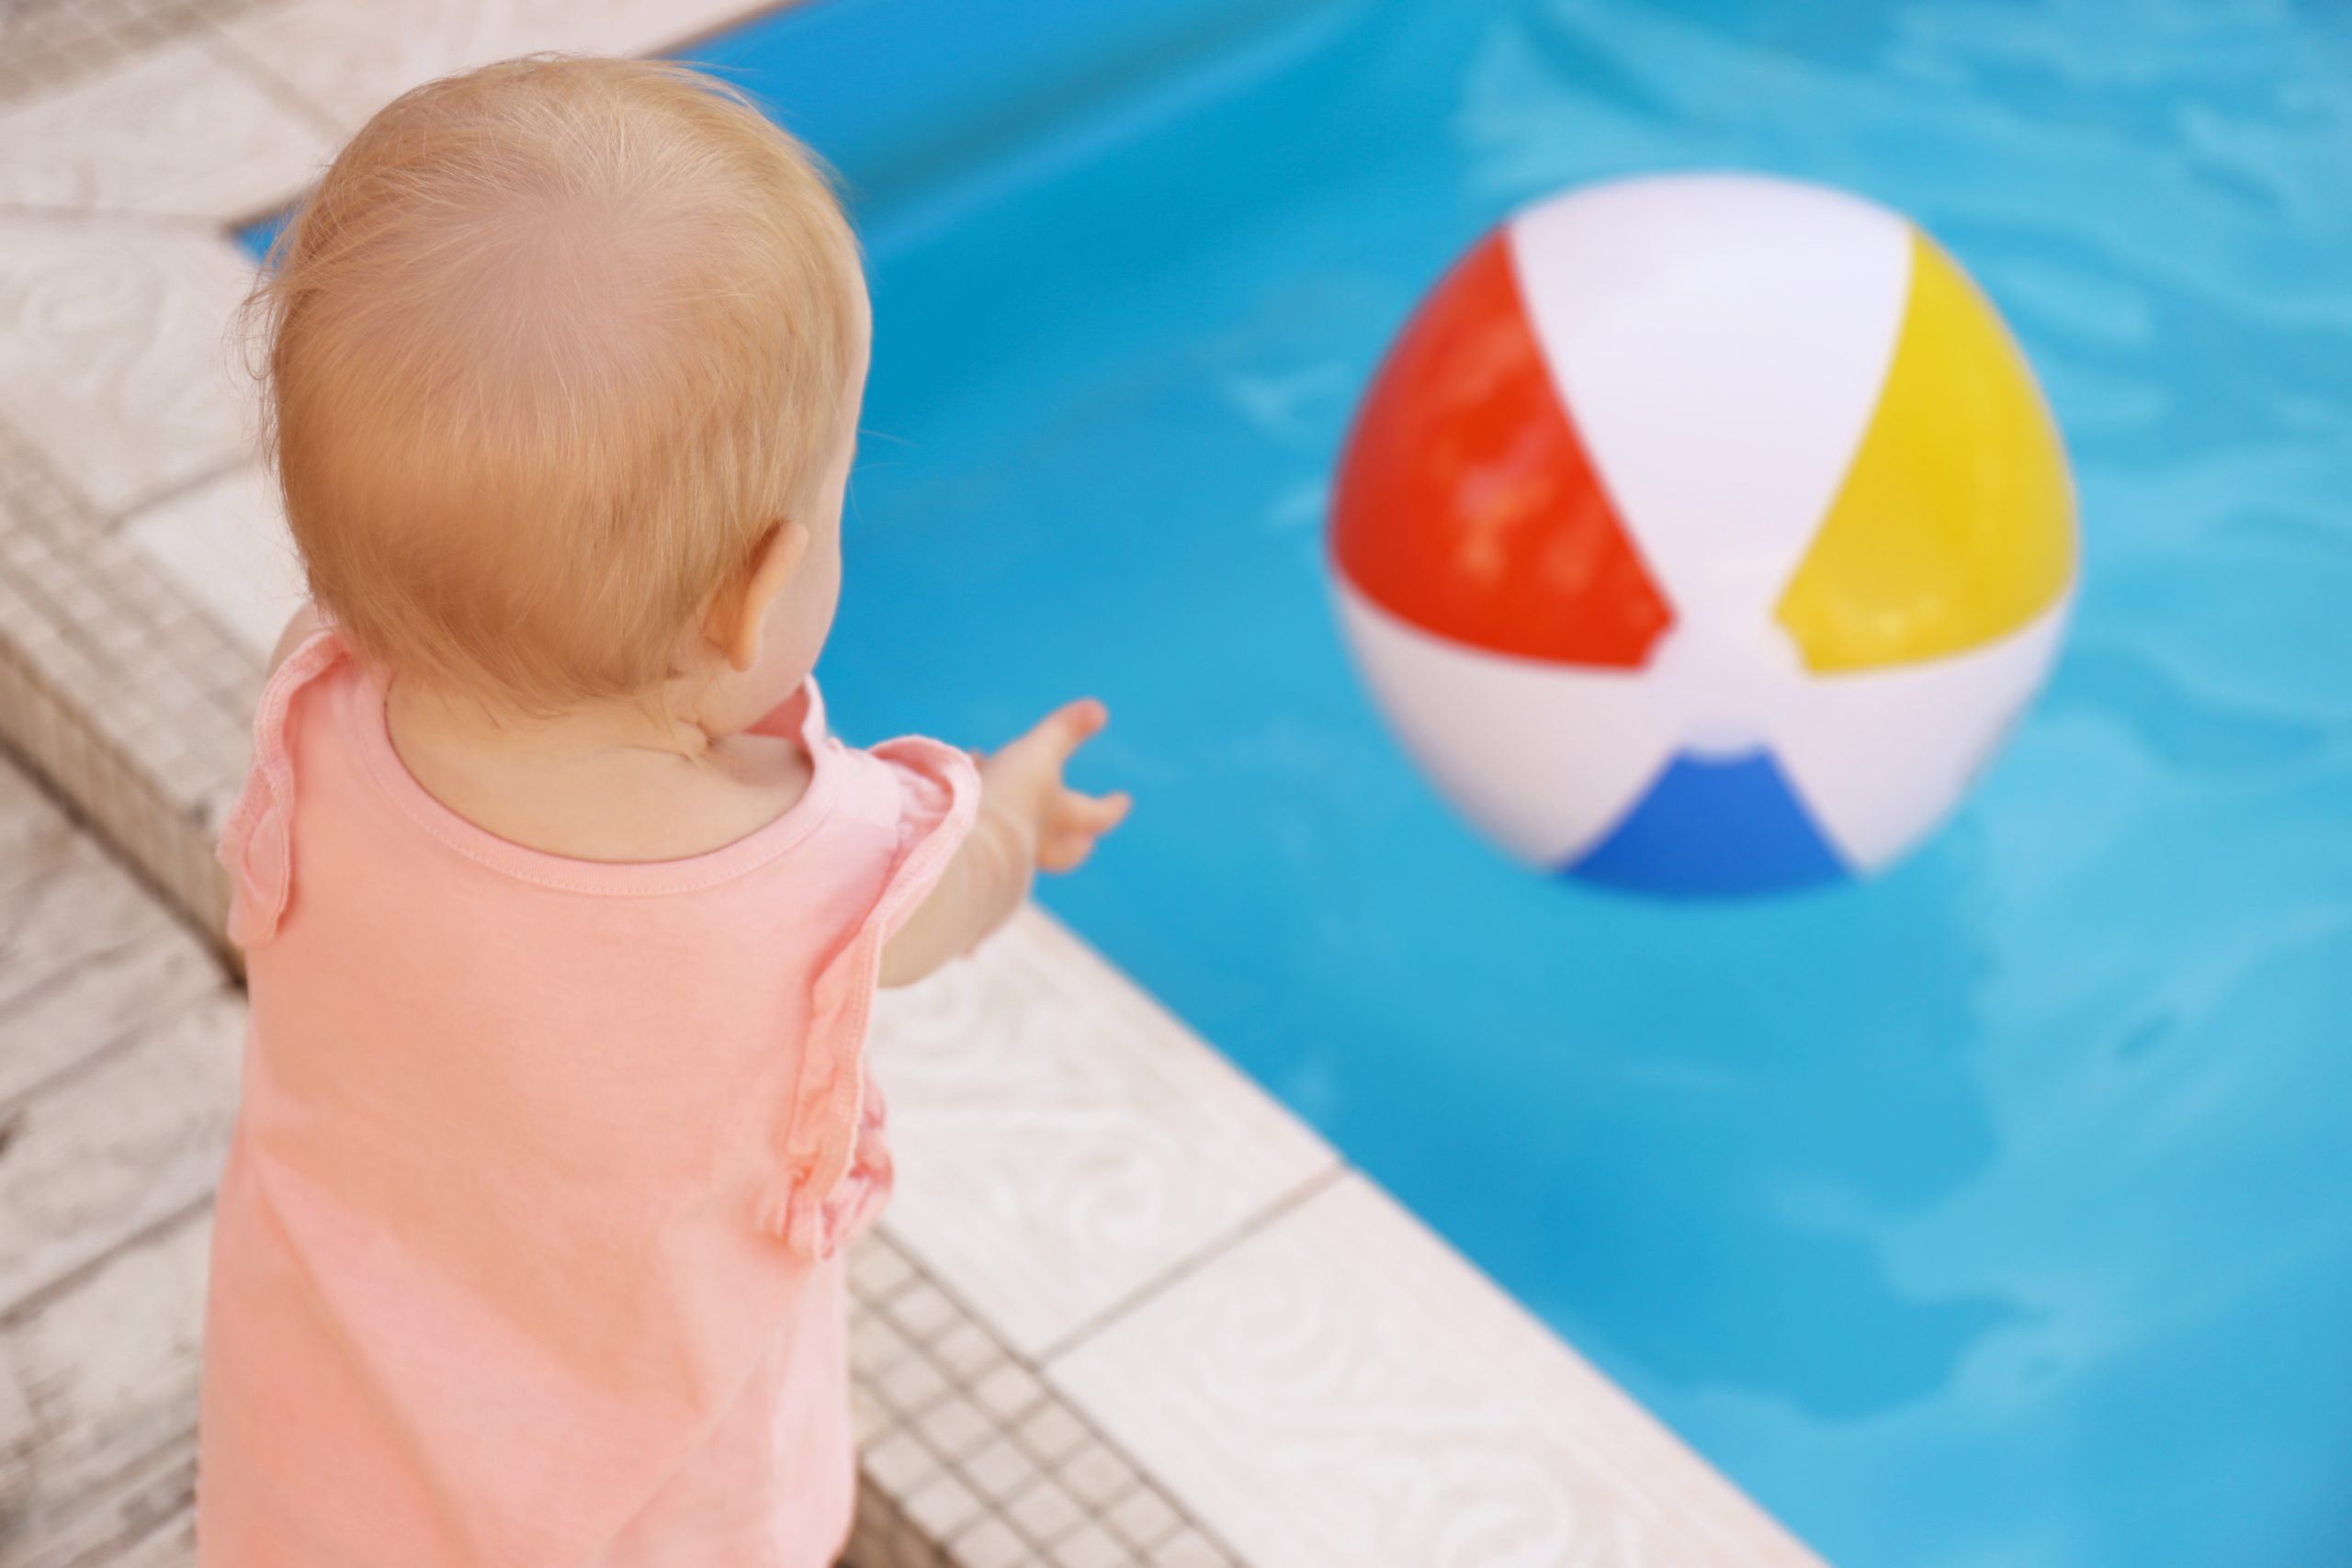 Baby throwing a ball into a pool